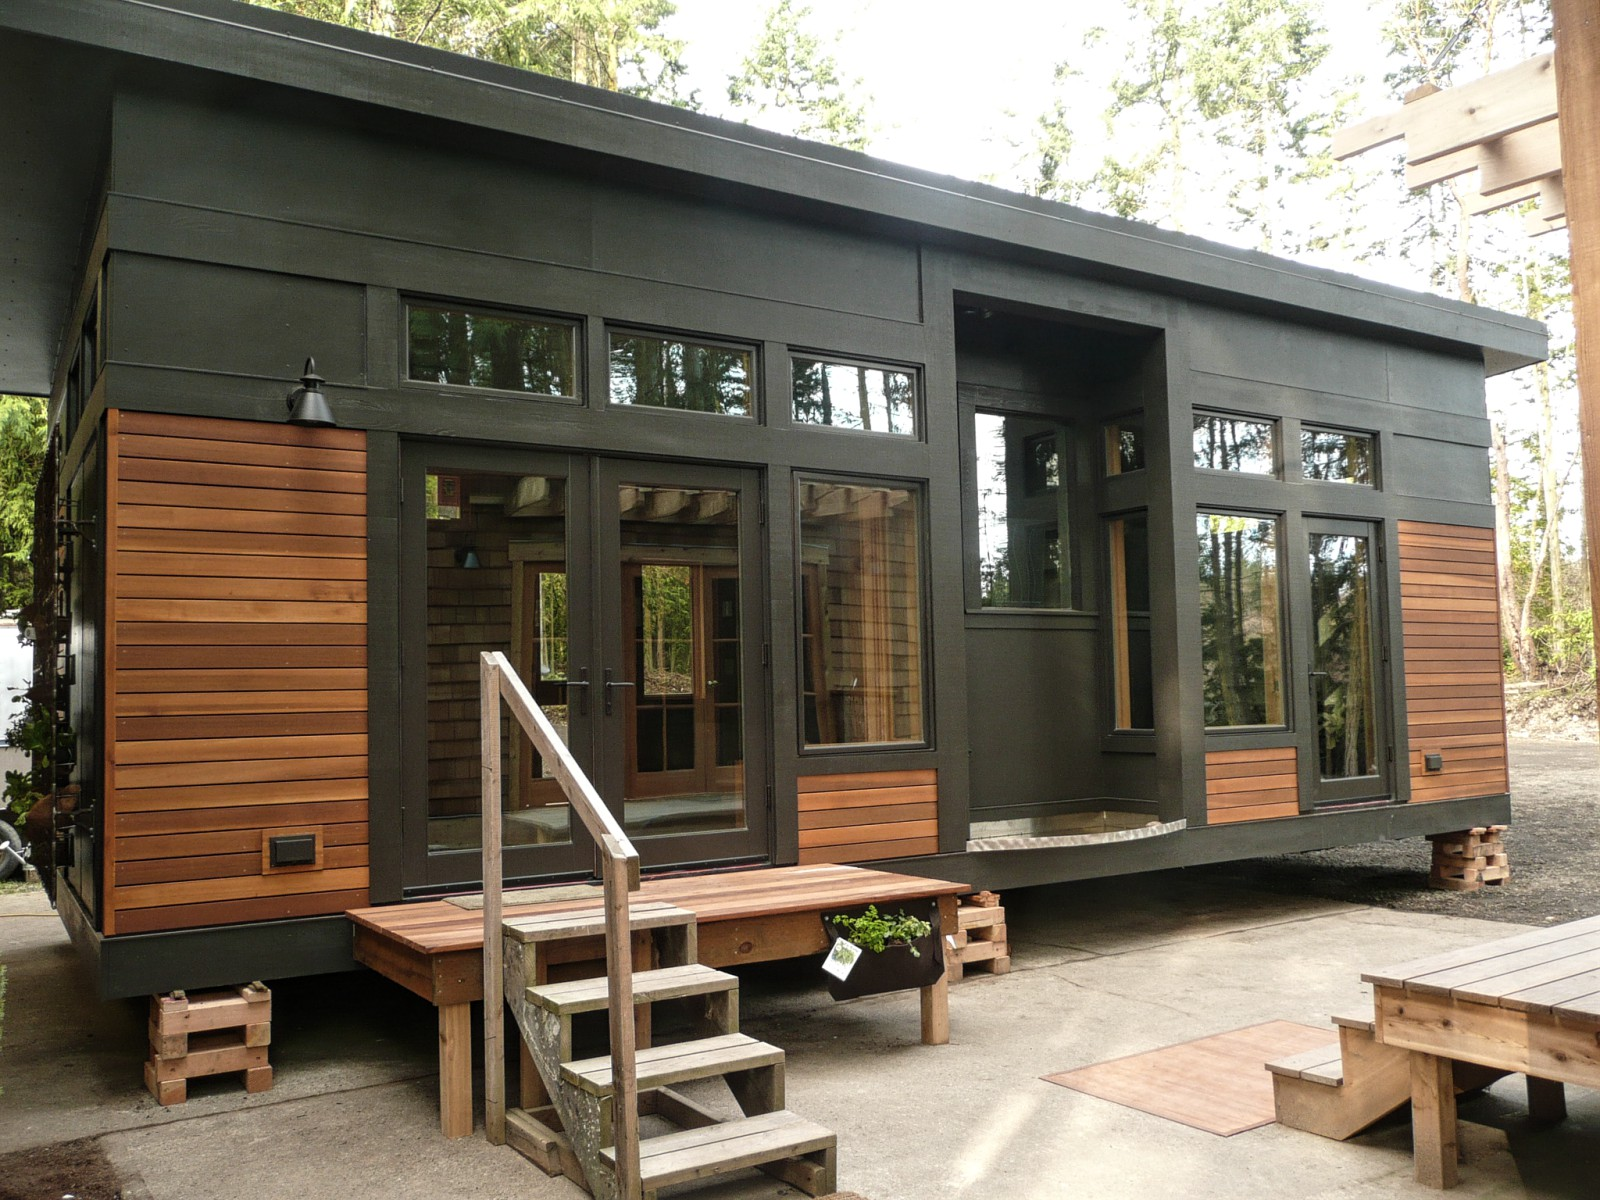 The Waterhaus, A Tiny Sustainable Prefab Home | GreenPod | Small House Bliss